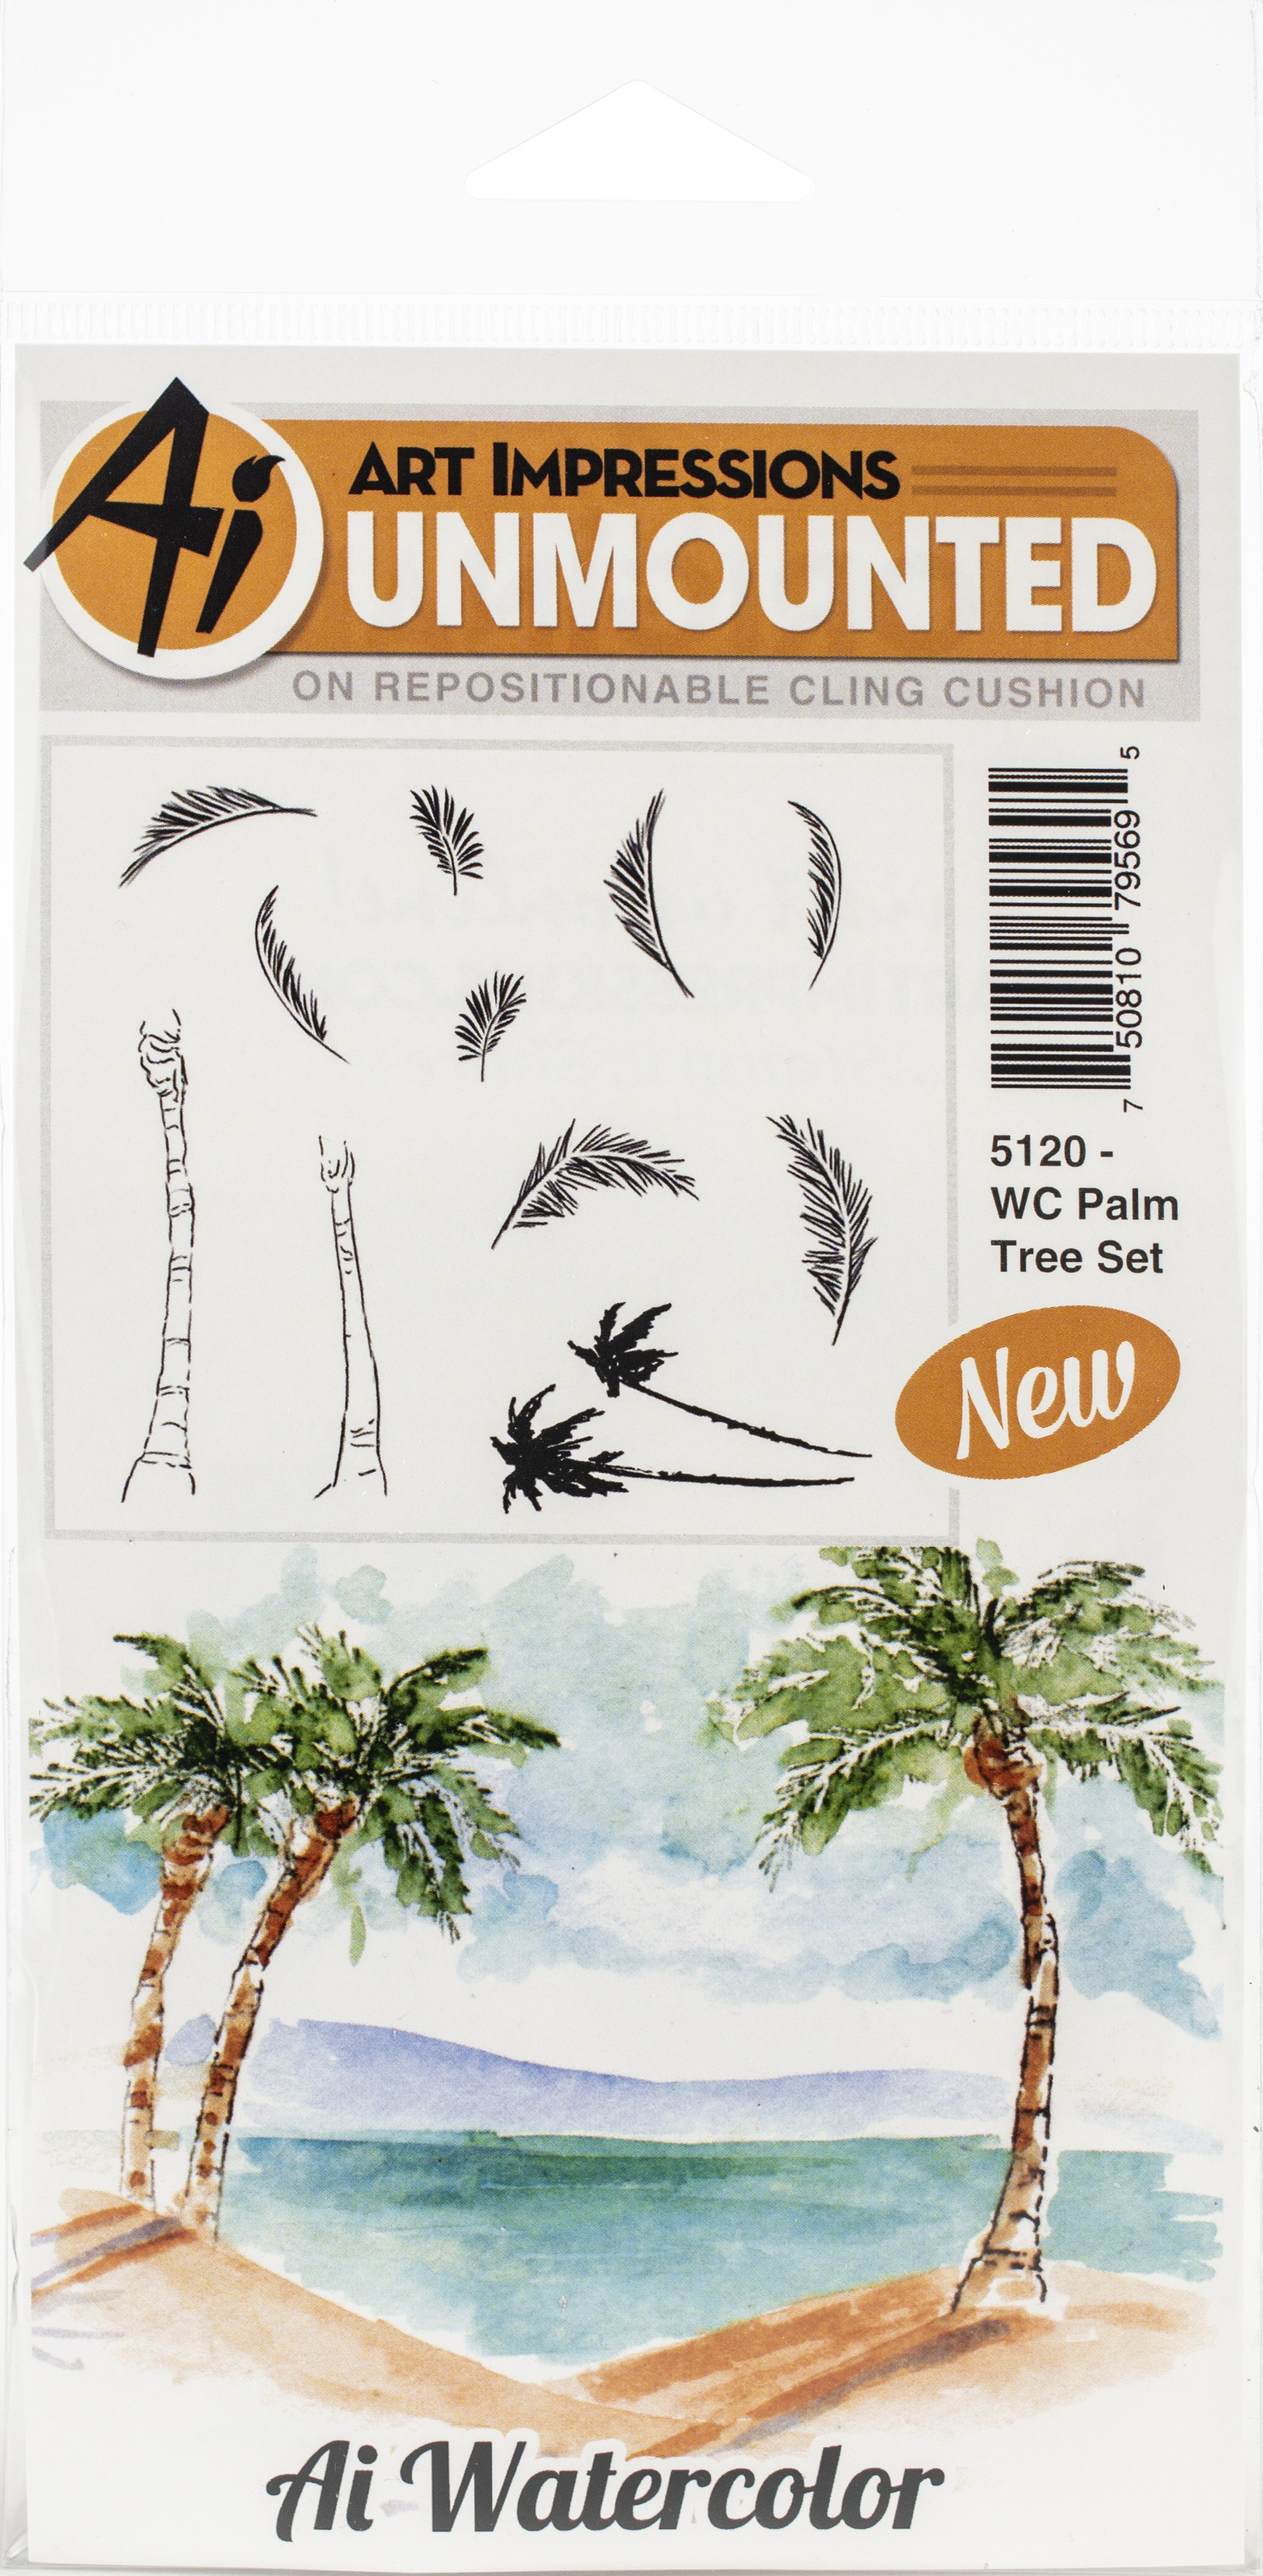 WC Palm Tree Set